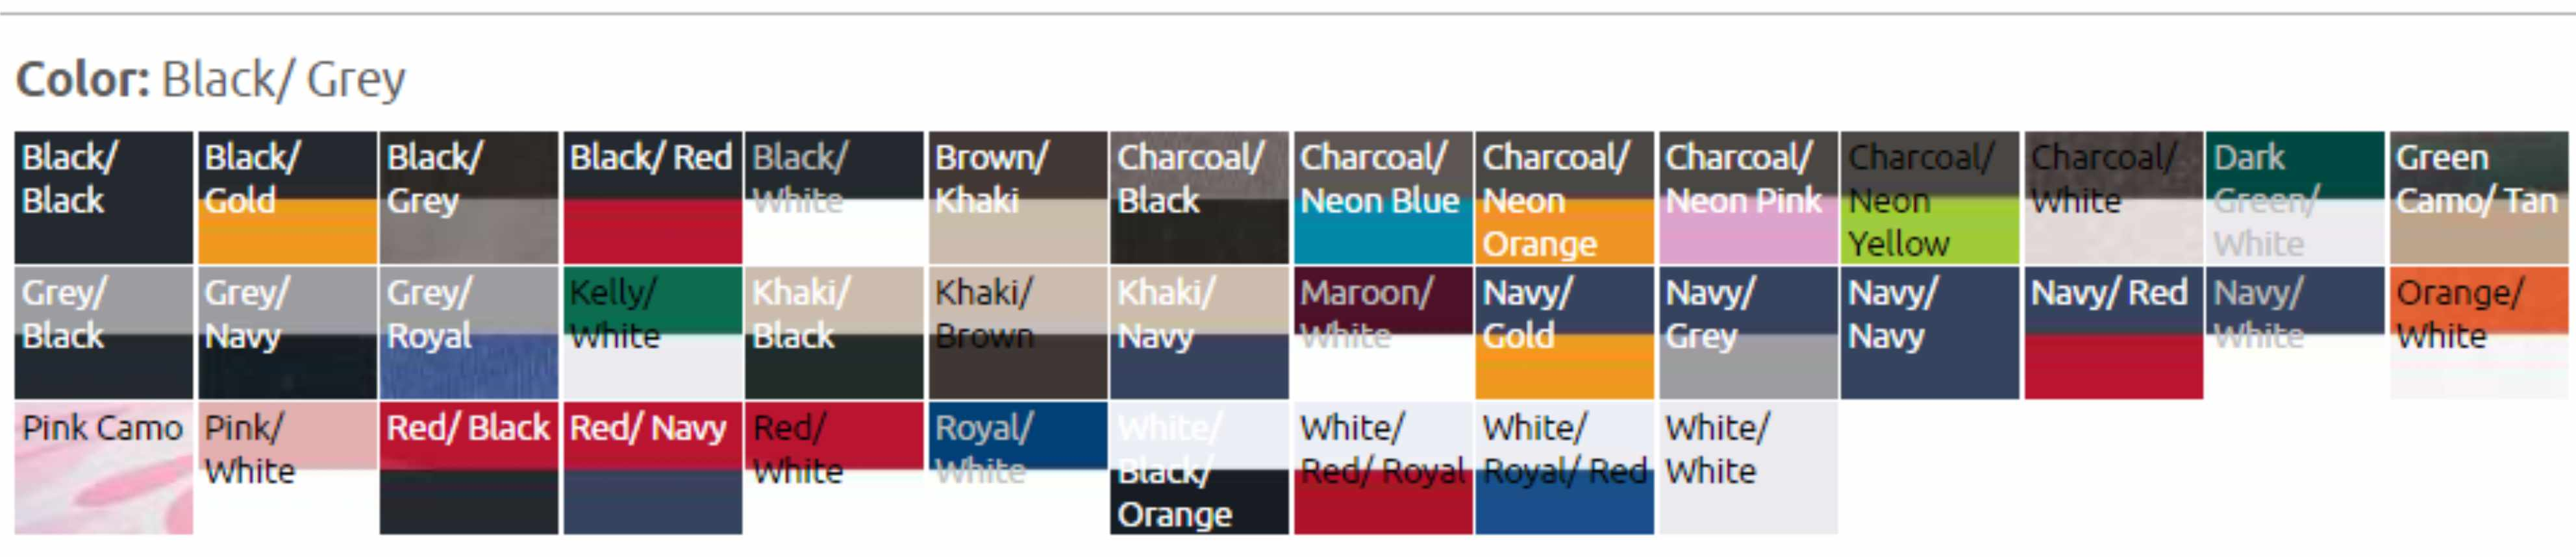 s102 color chart